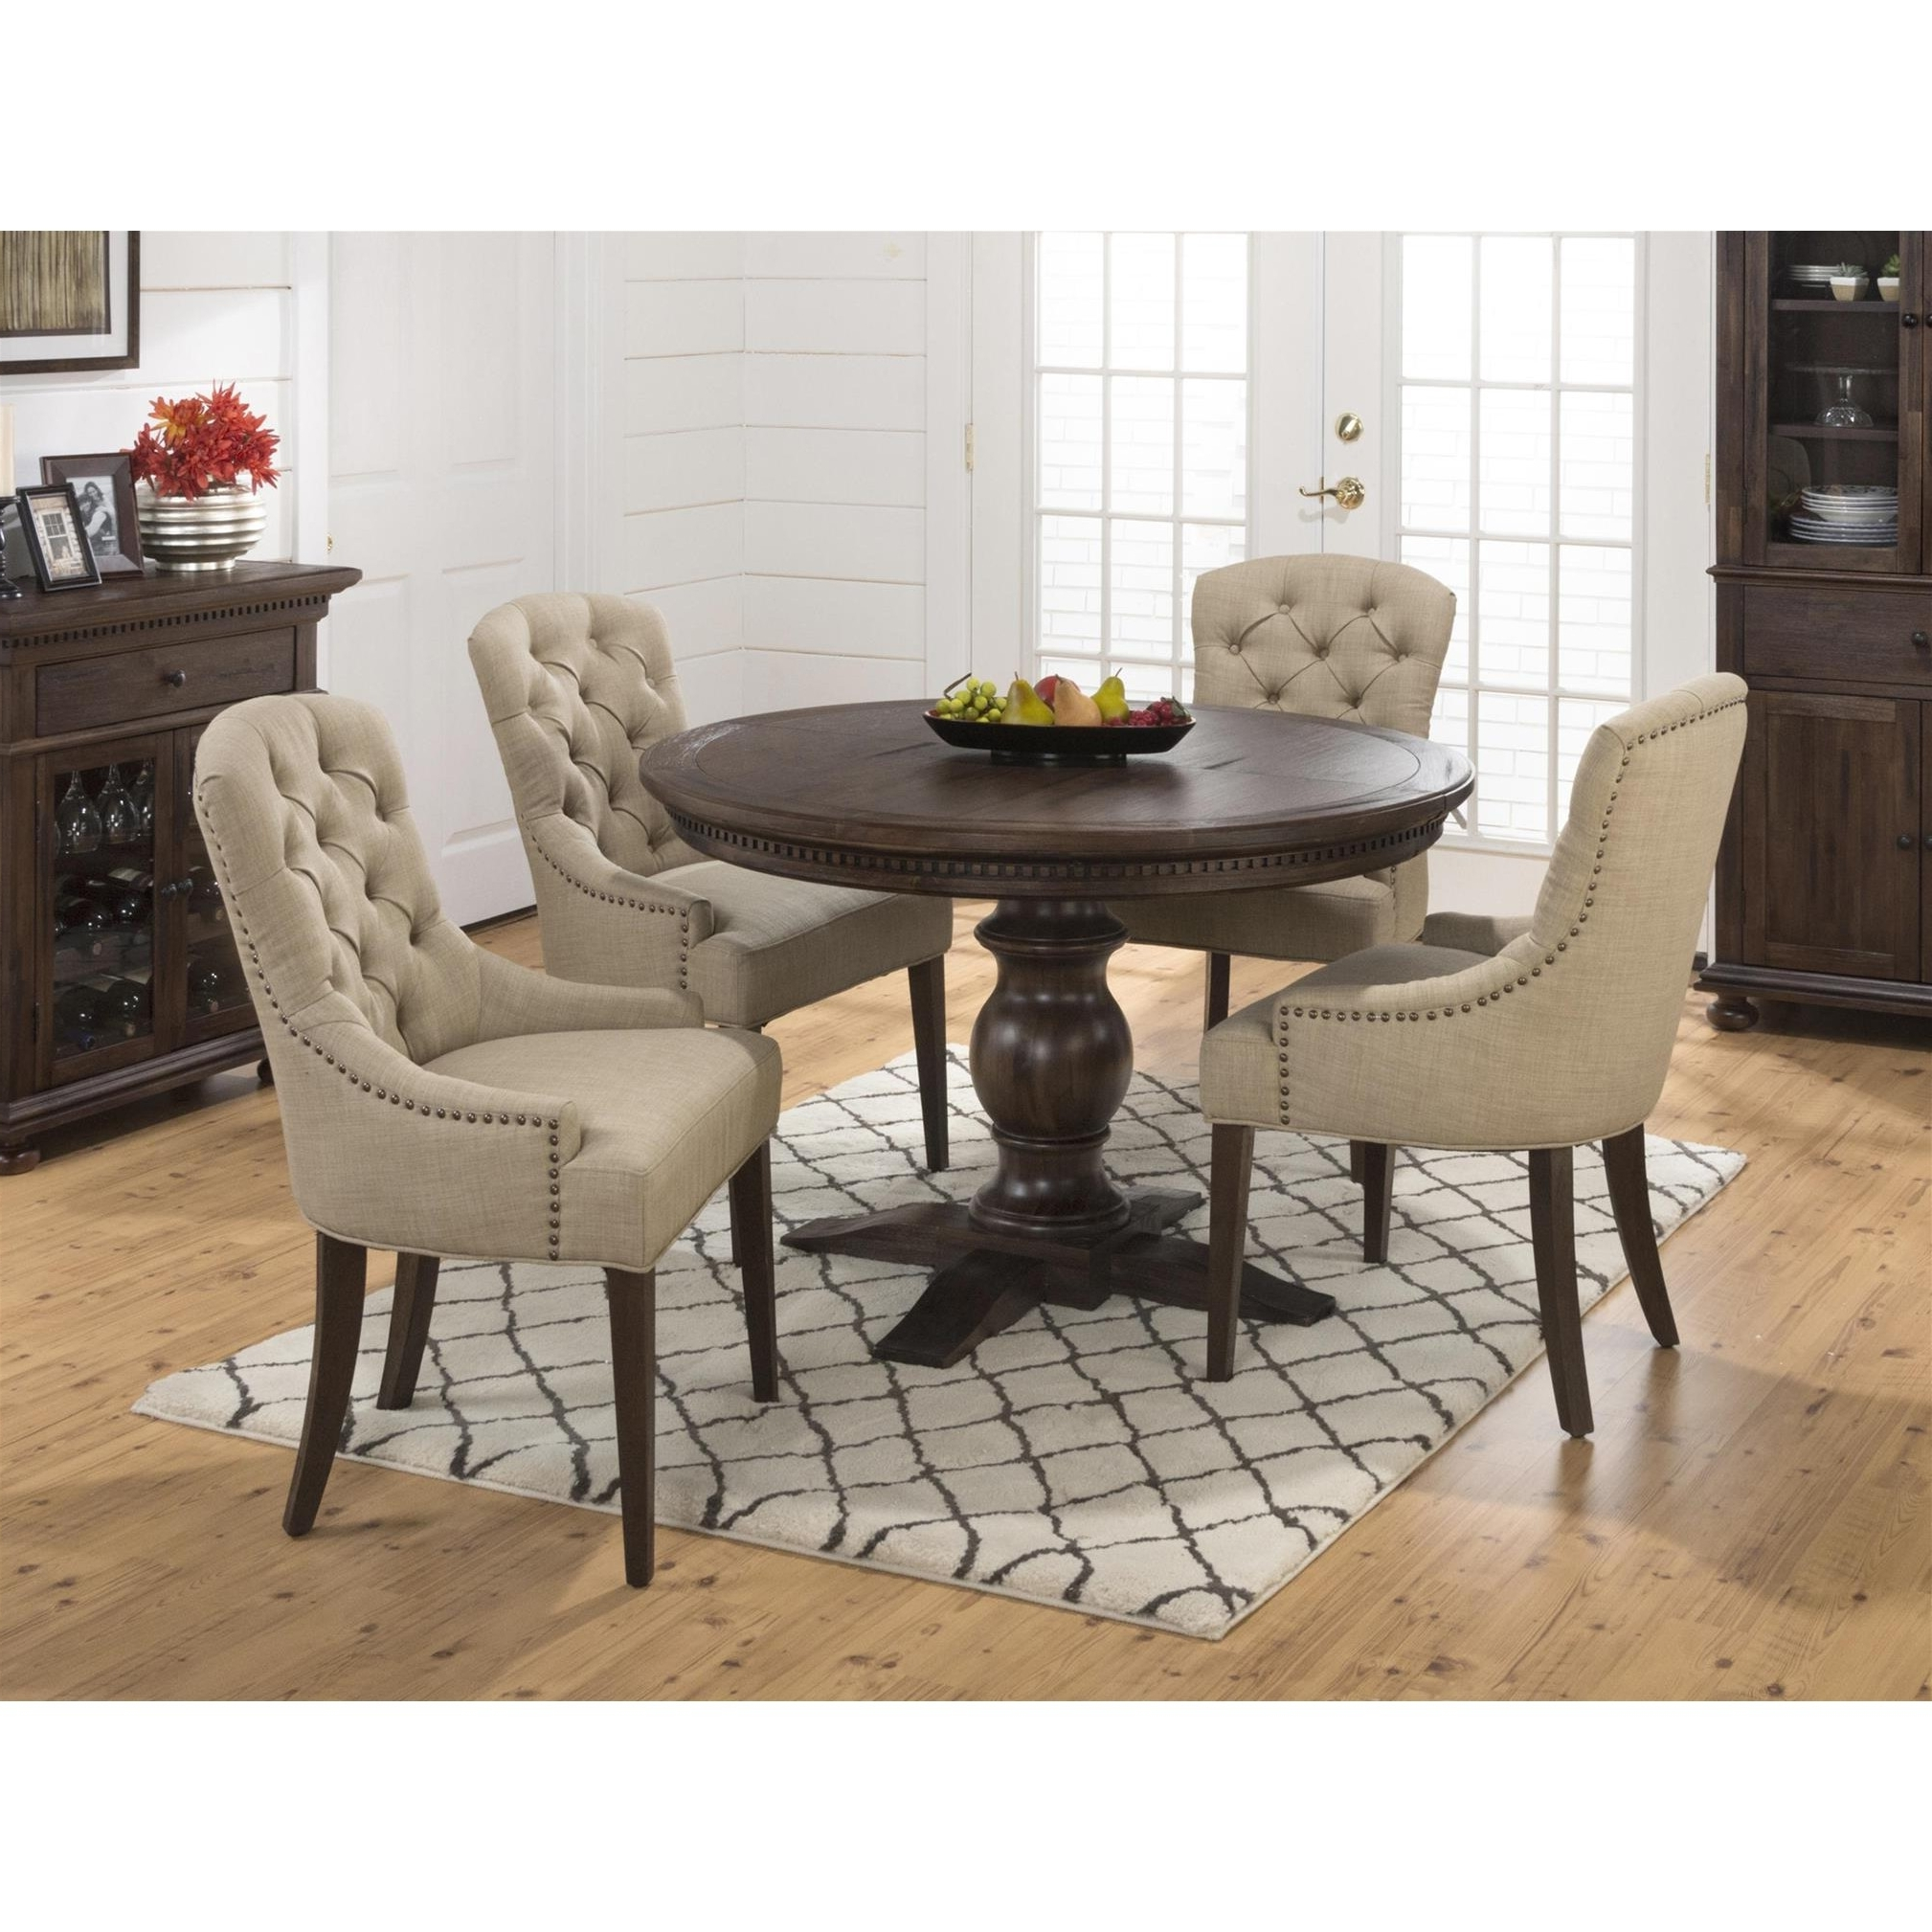 Newest Jofran Geneva Hills 5Pc Round Dining Table Set With Tufted Chairs For Craftsman 5 Piece Round Dining Sets With Side Chairs (View 18 of 25)